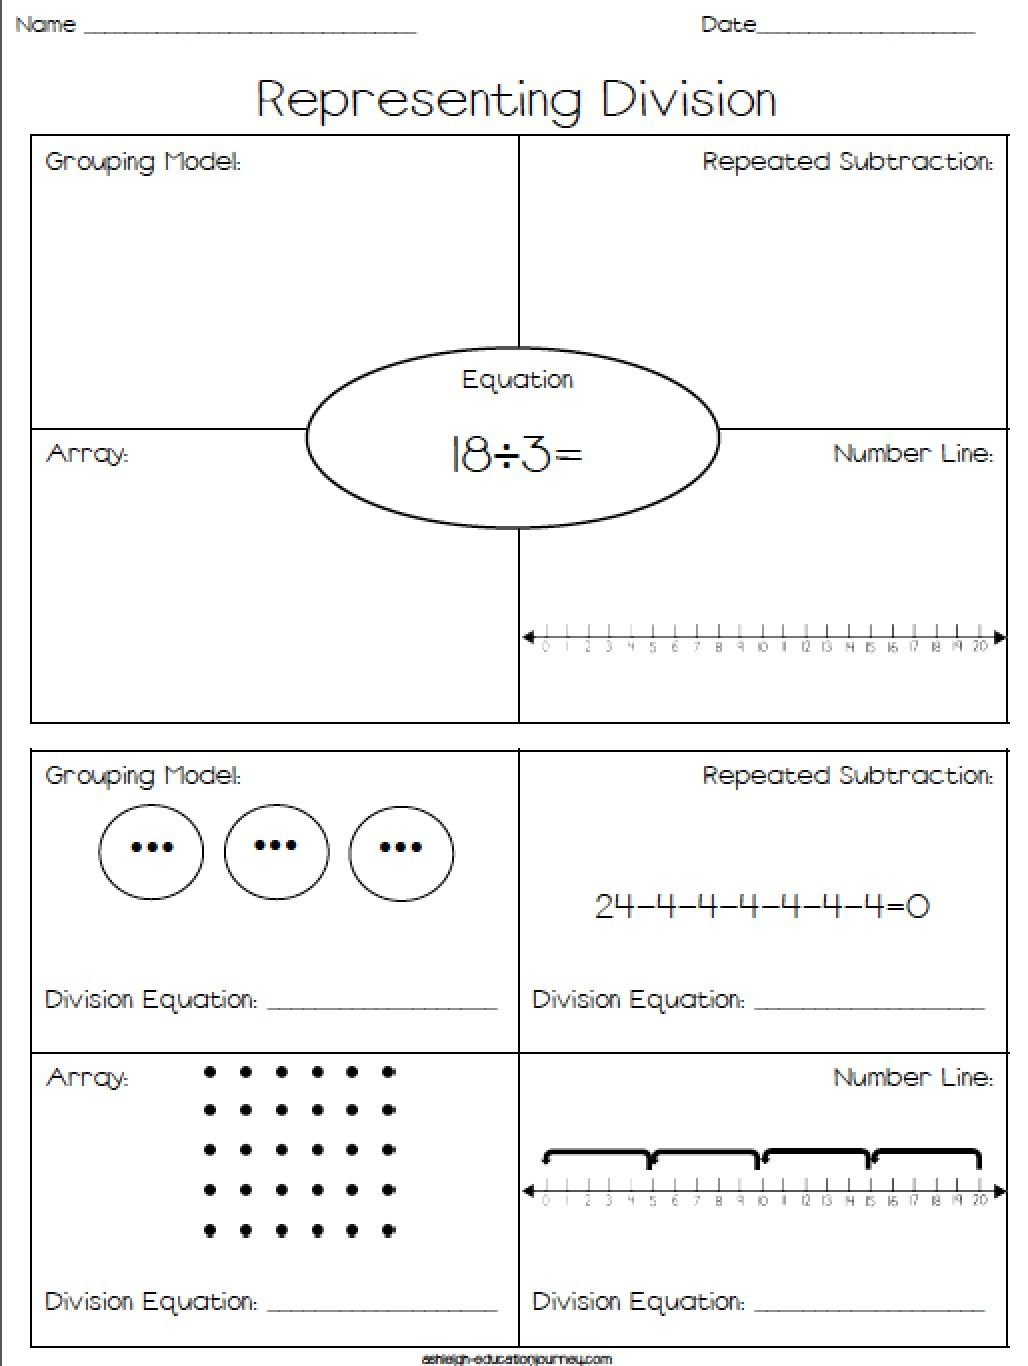 Pin By Lucy Martinez On Maths Math Division Math Instruction Education Math